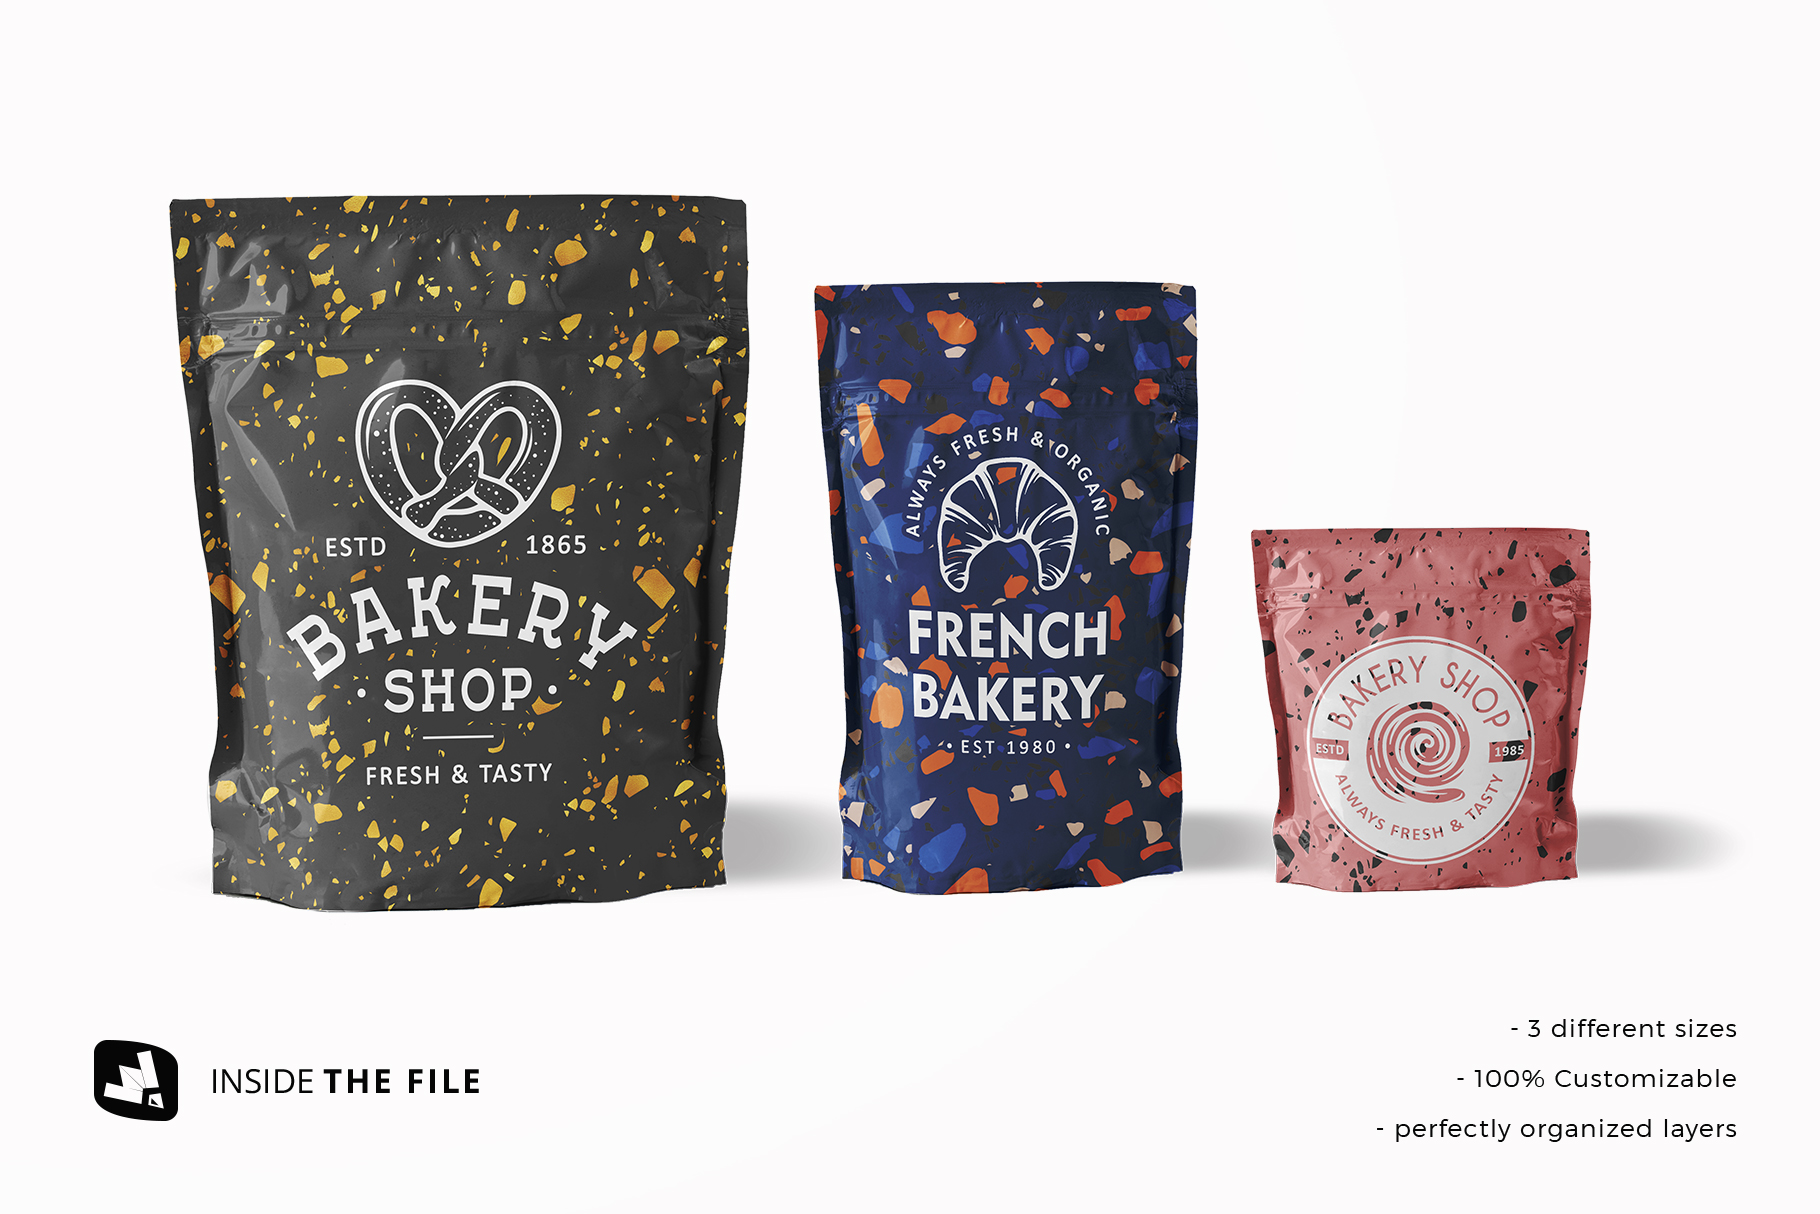 insdie the file of the flexible food pouch packaging mockup